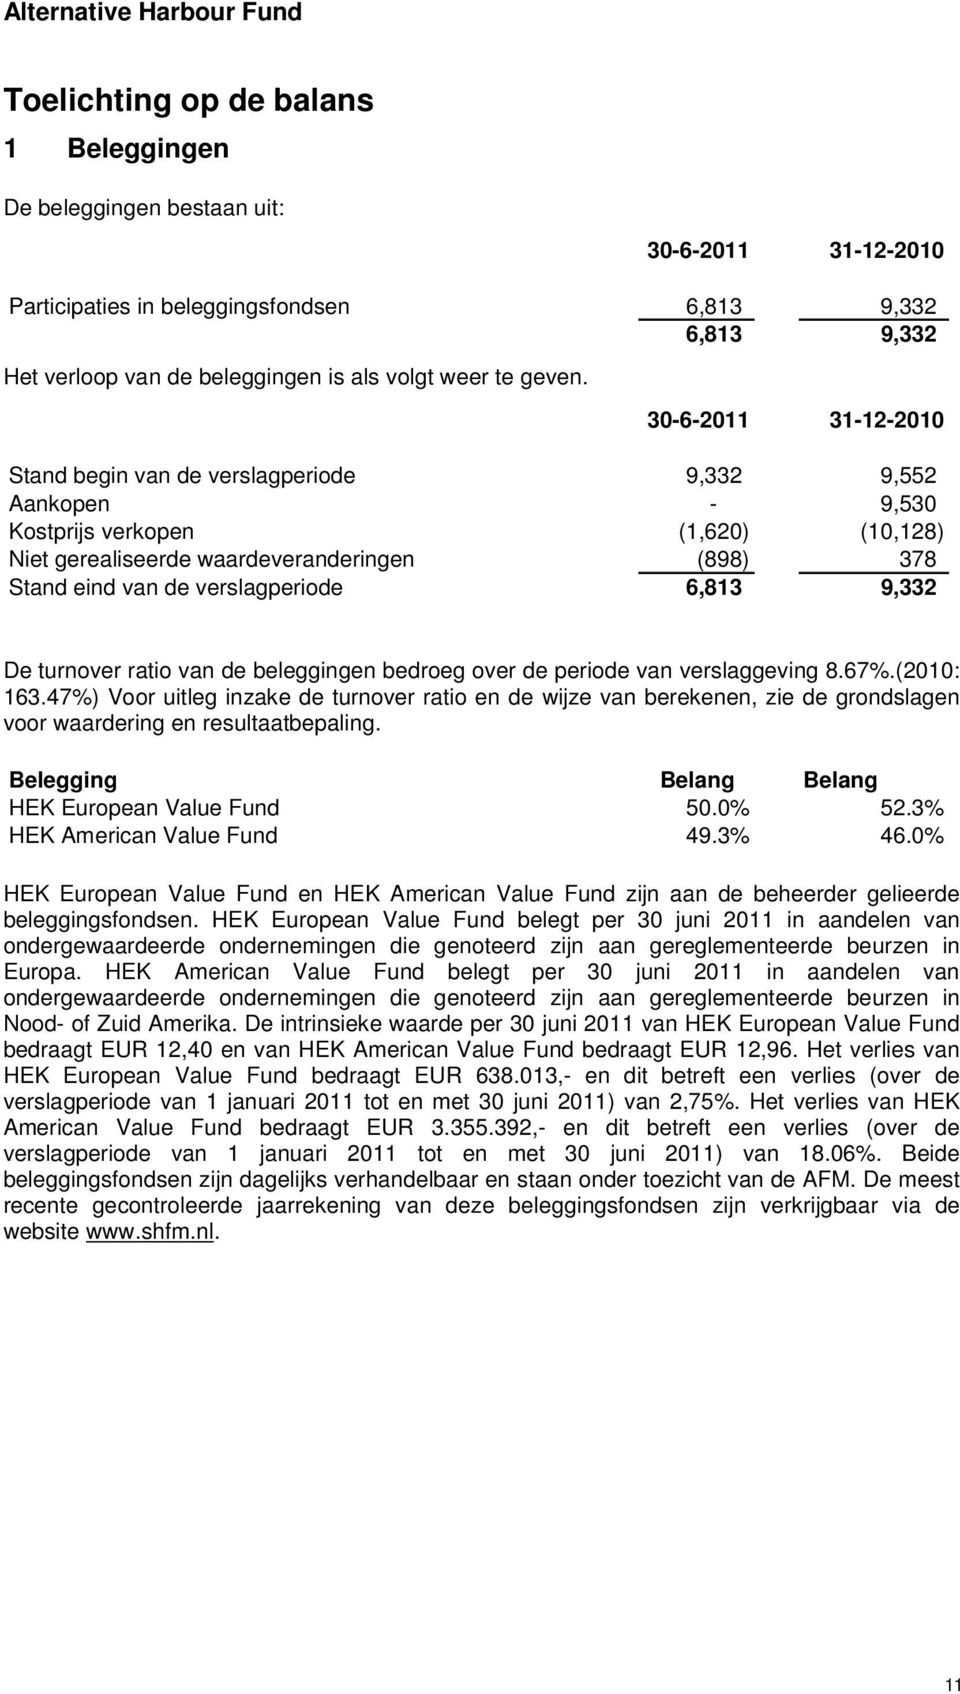 turnover ratio van de beleggingen bedroeg over de periode van verslaggeving 8.67%.(2010: 163.